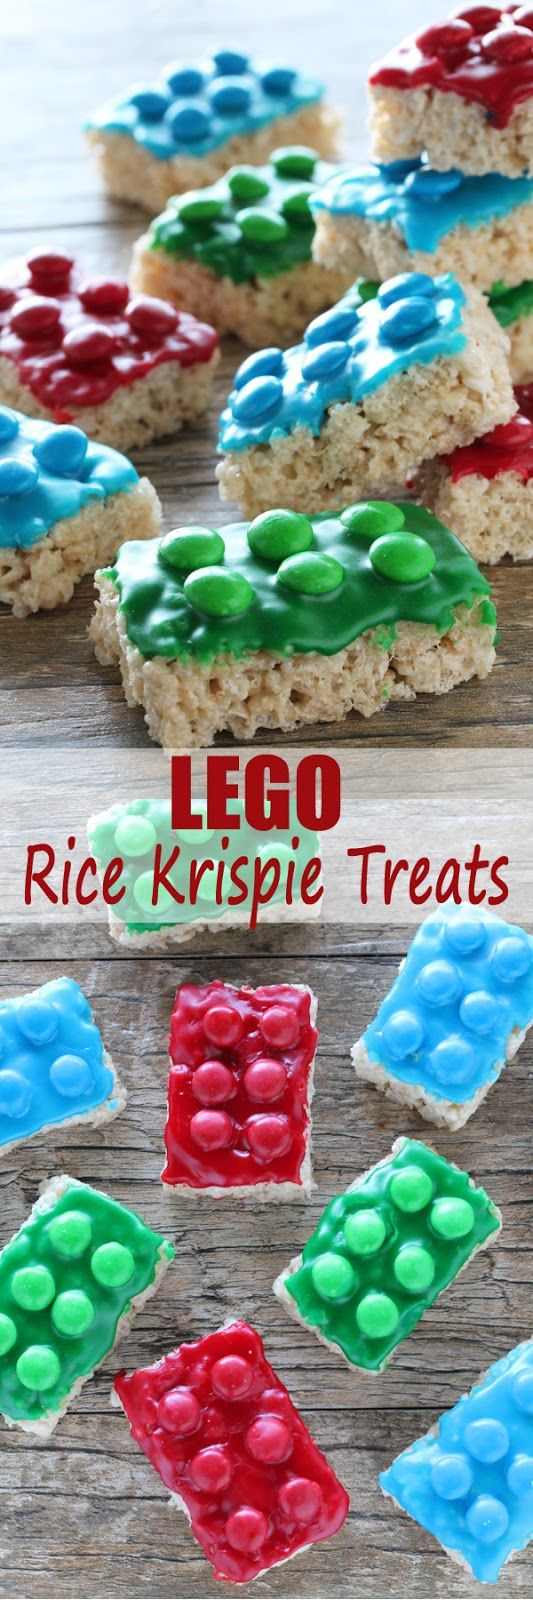 Lego Rice Krispie Treats. Perfect for a Lego Party!                                                                                                                                                                                 More